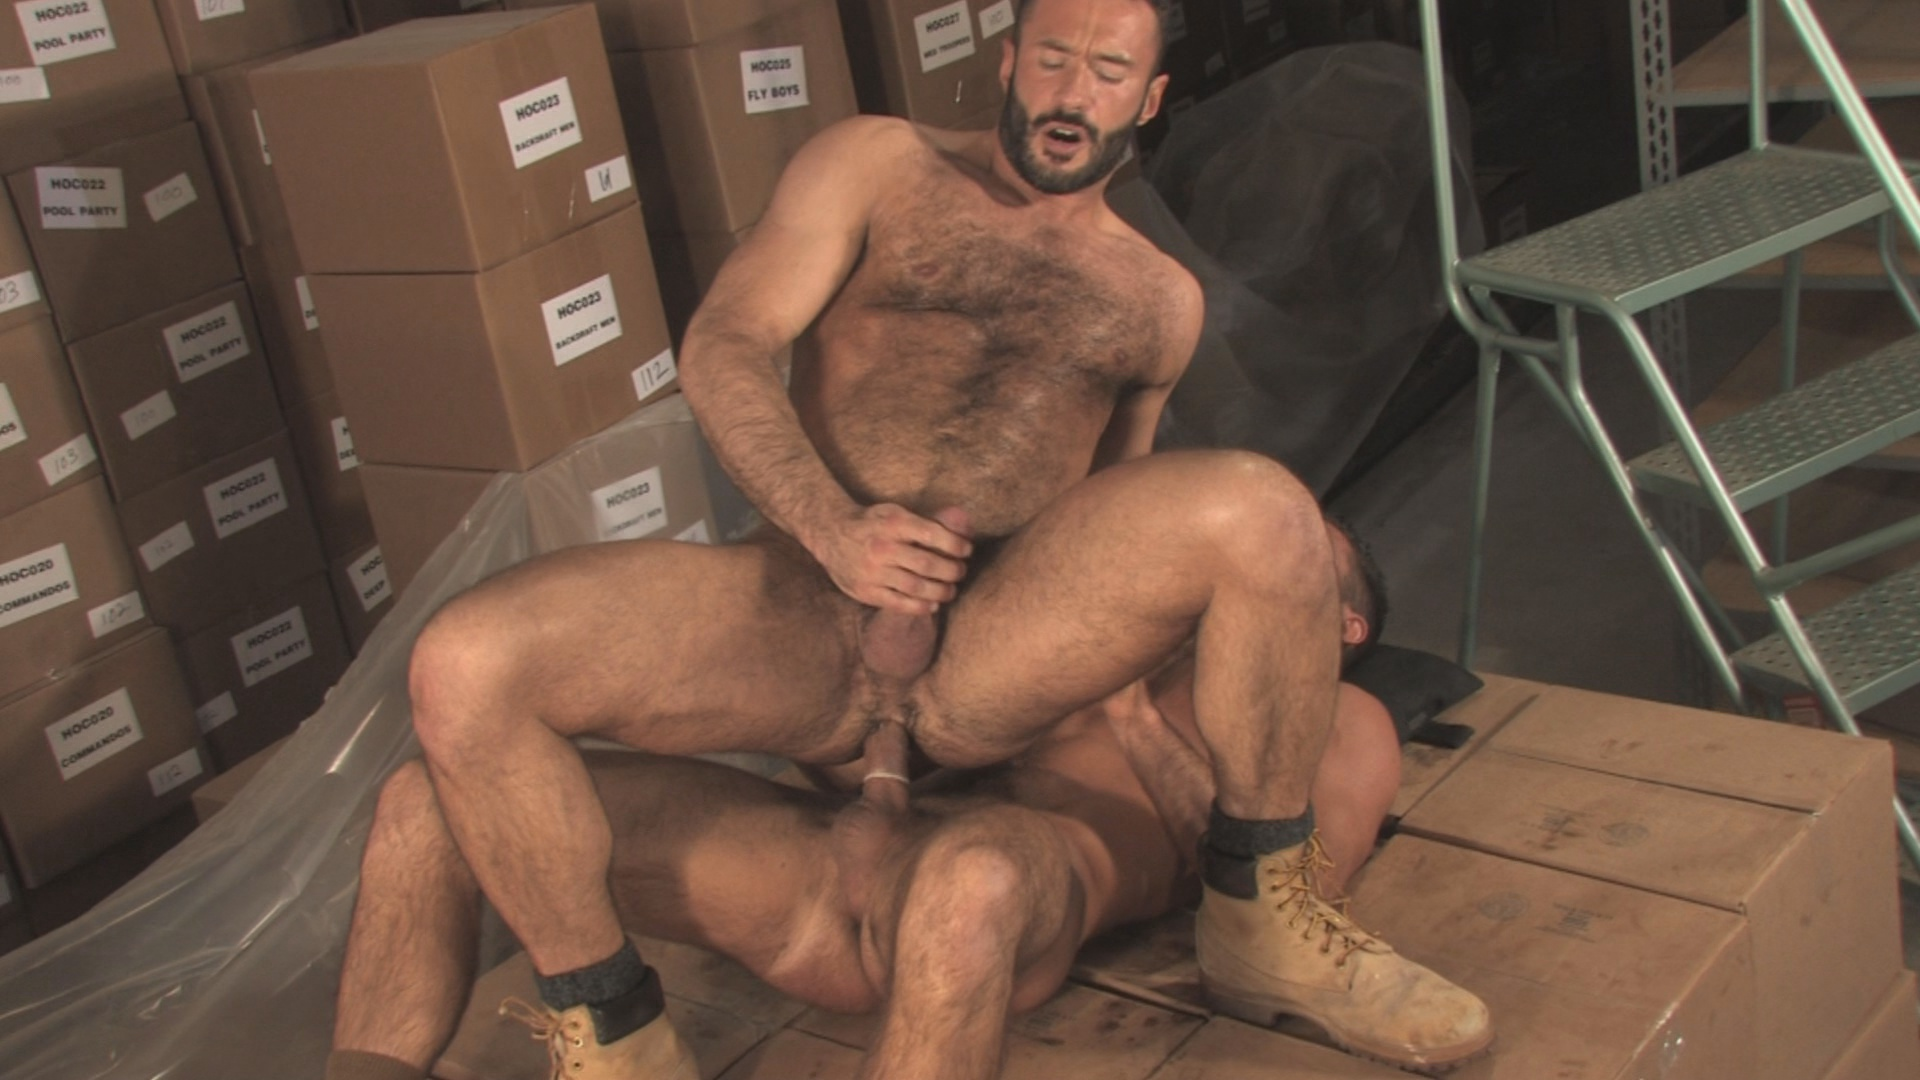 Humongous Cocks 23 Xvideo gay